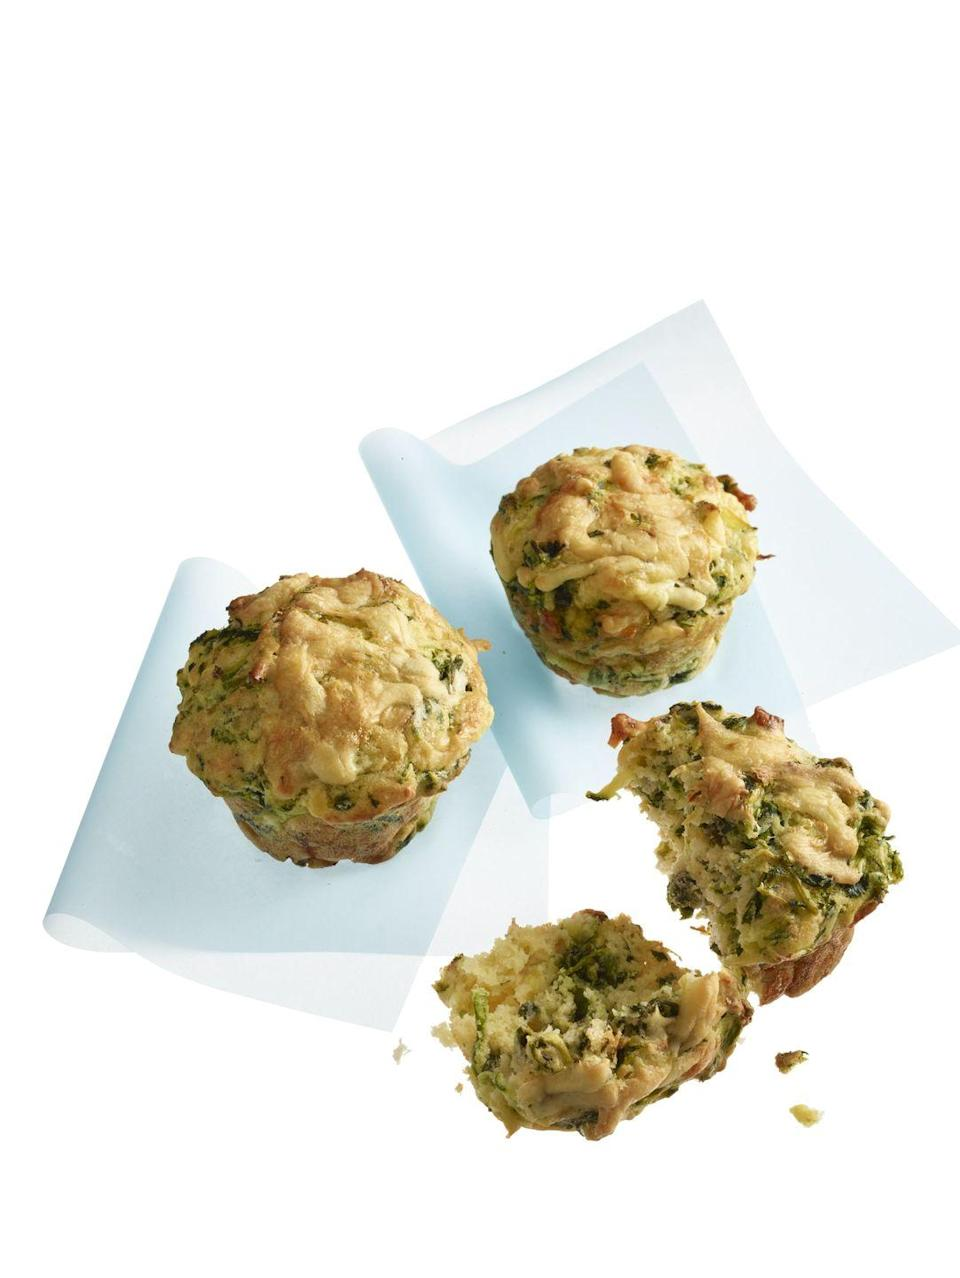 """<p>Savory muffins make a great protein-packed snack.</p><p><a href=""""https://www.womansday.com/food-recipes/food-drinks/recipes/a55806/cheddar-zucchini-scallion-muffins-recipe/"""" rel=""""nofollow noopener"""" target=""""_blank"""" data-ylk=""""slk:Get the Cheddar, Zucchini & Scallion Muffins recipe."""" class=""""link rapid-noclick-resp""""><em>Get the Cheddar, Zucchini & Scallion Muffins recipe.</em></a></p>"""